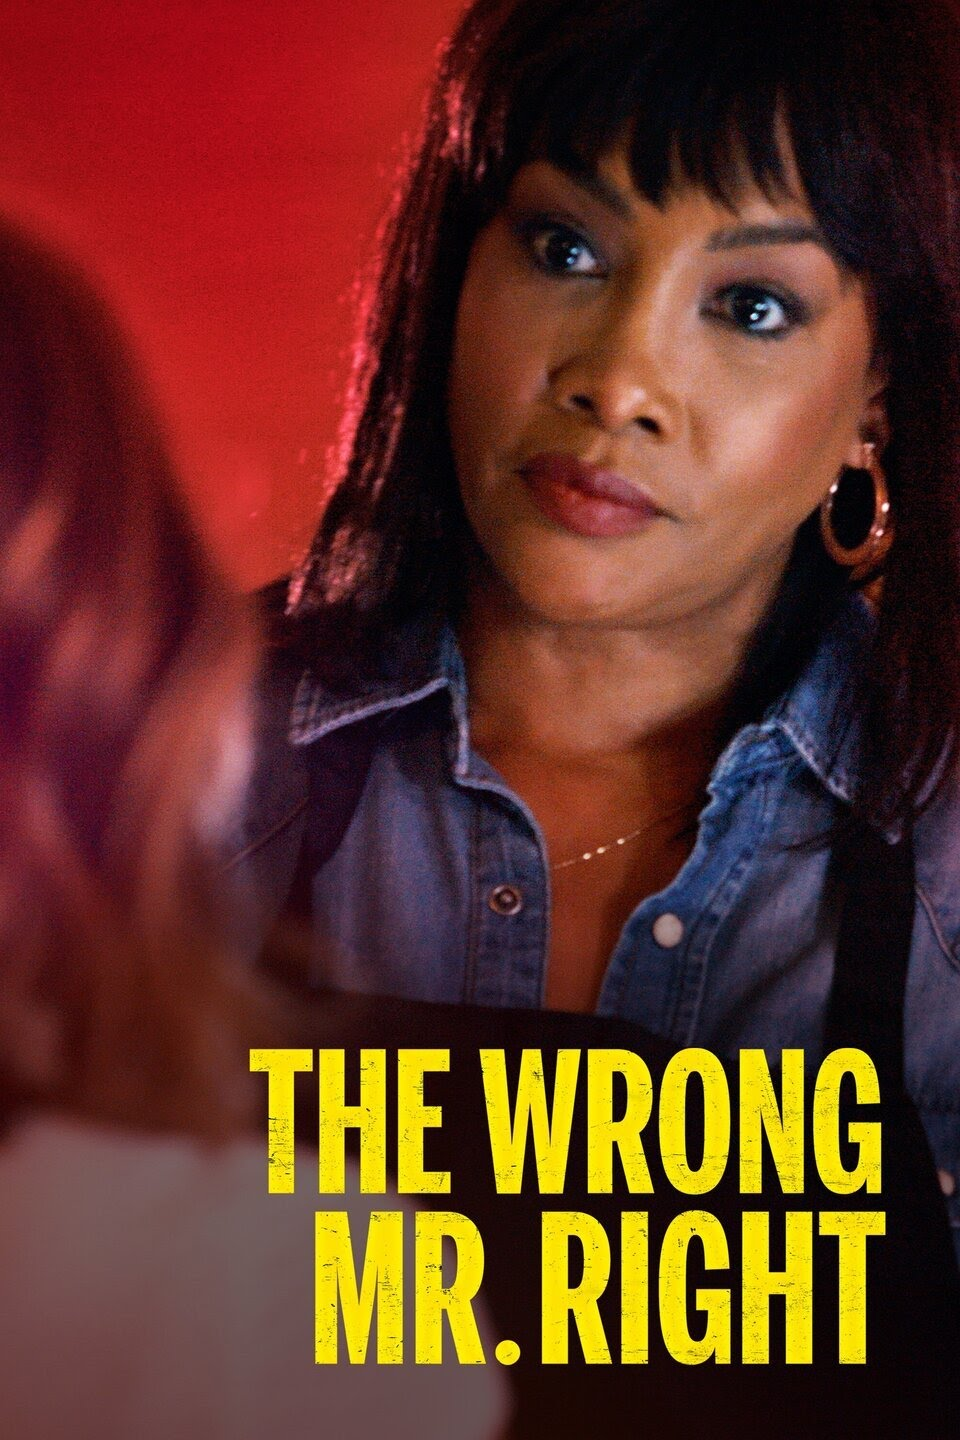 watch The Wrong Mr. Right on soap2day